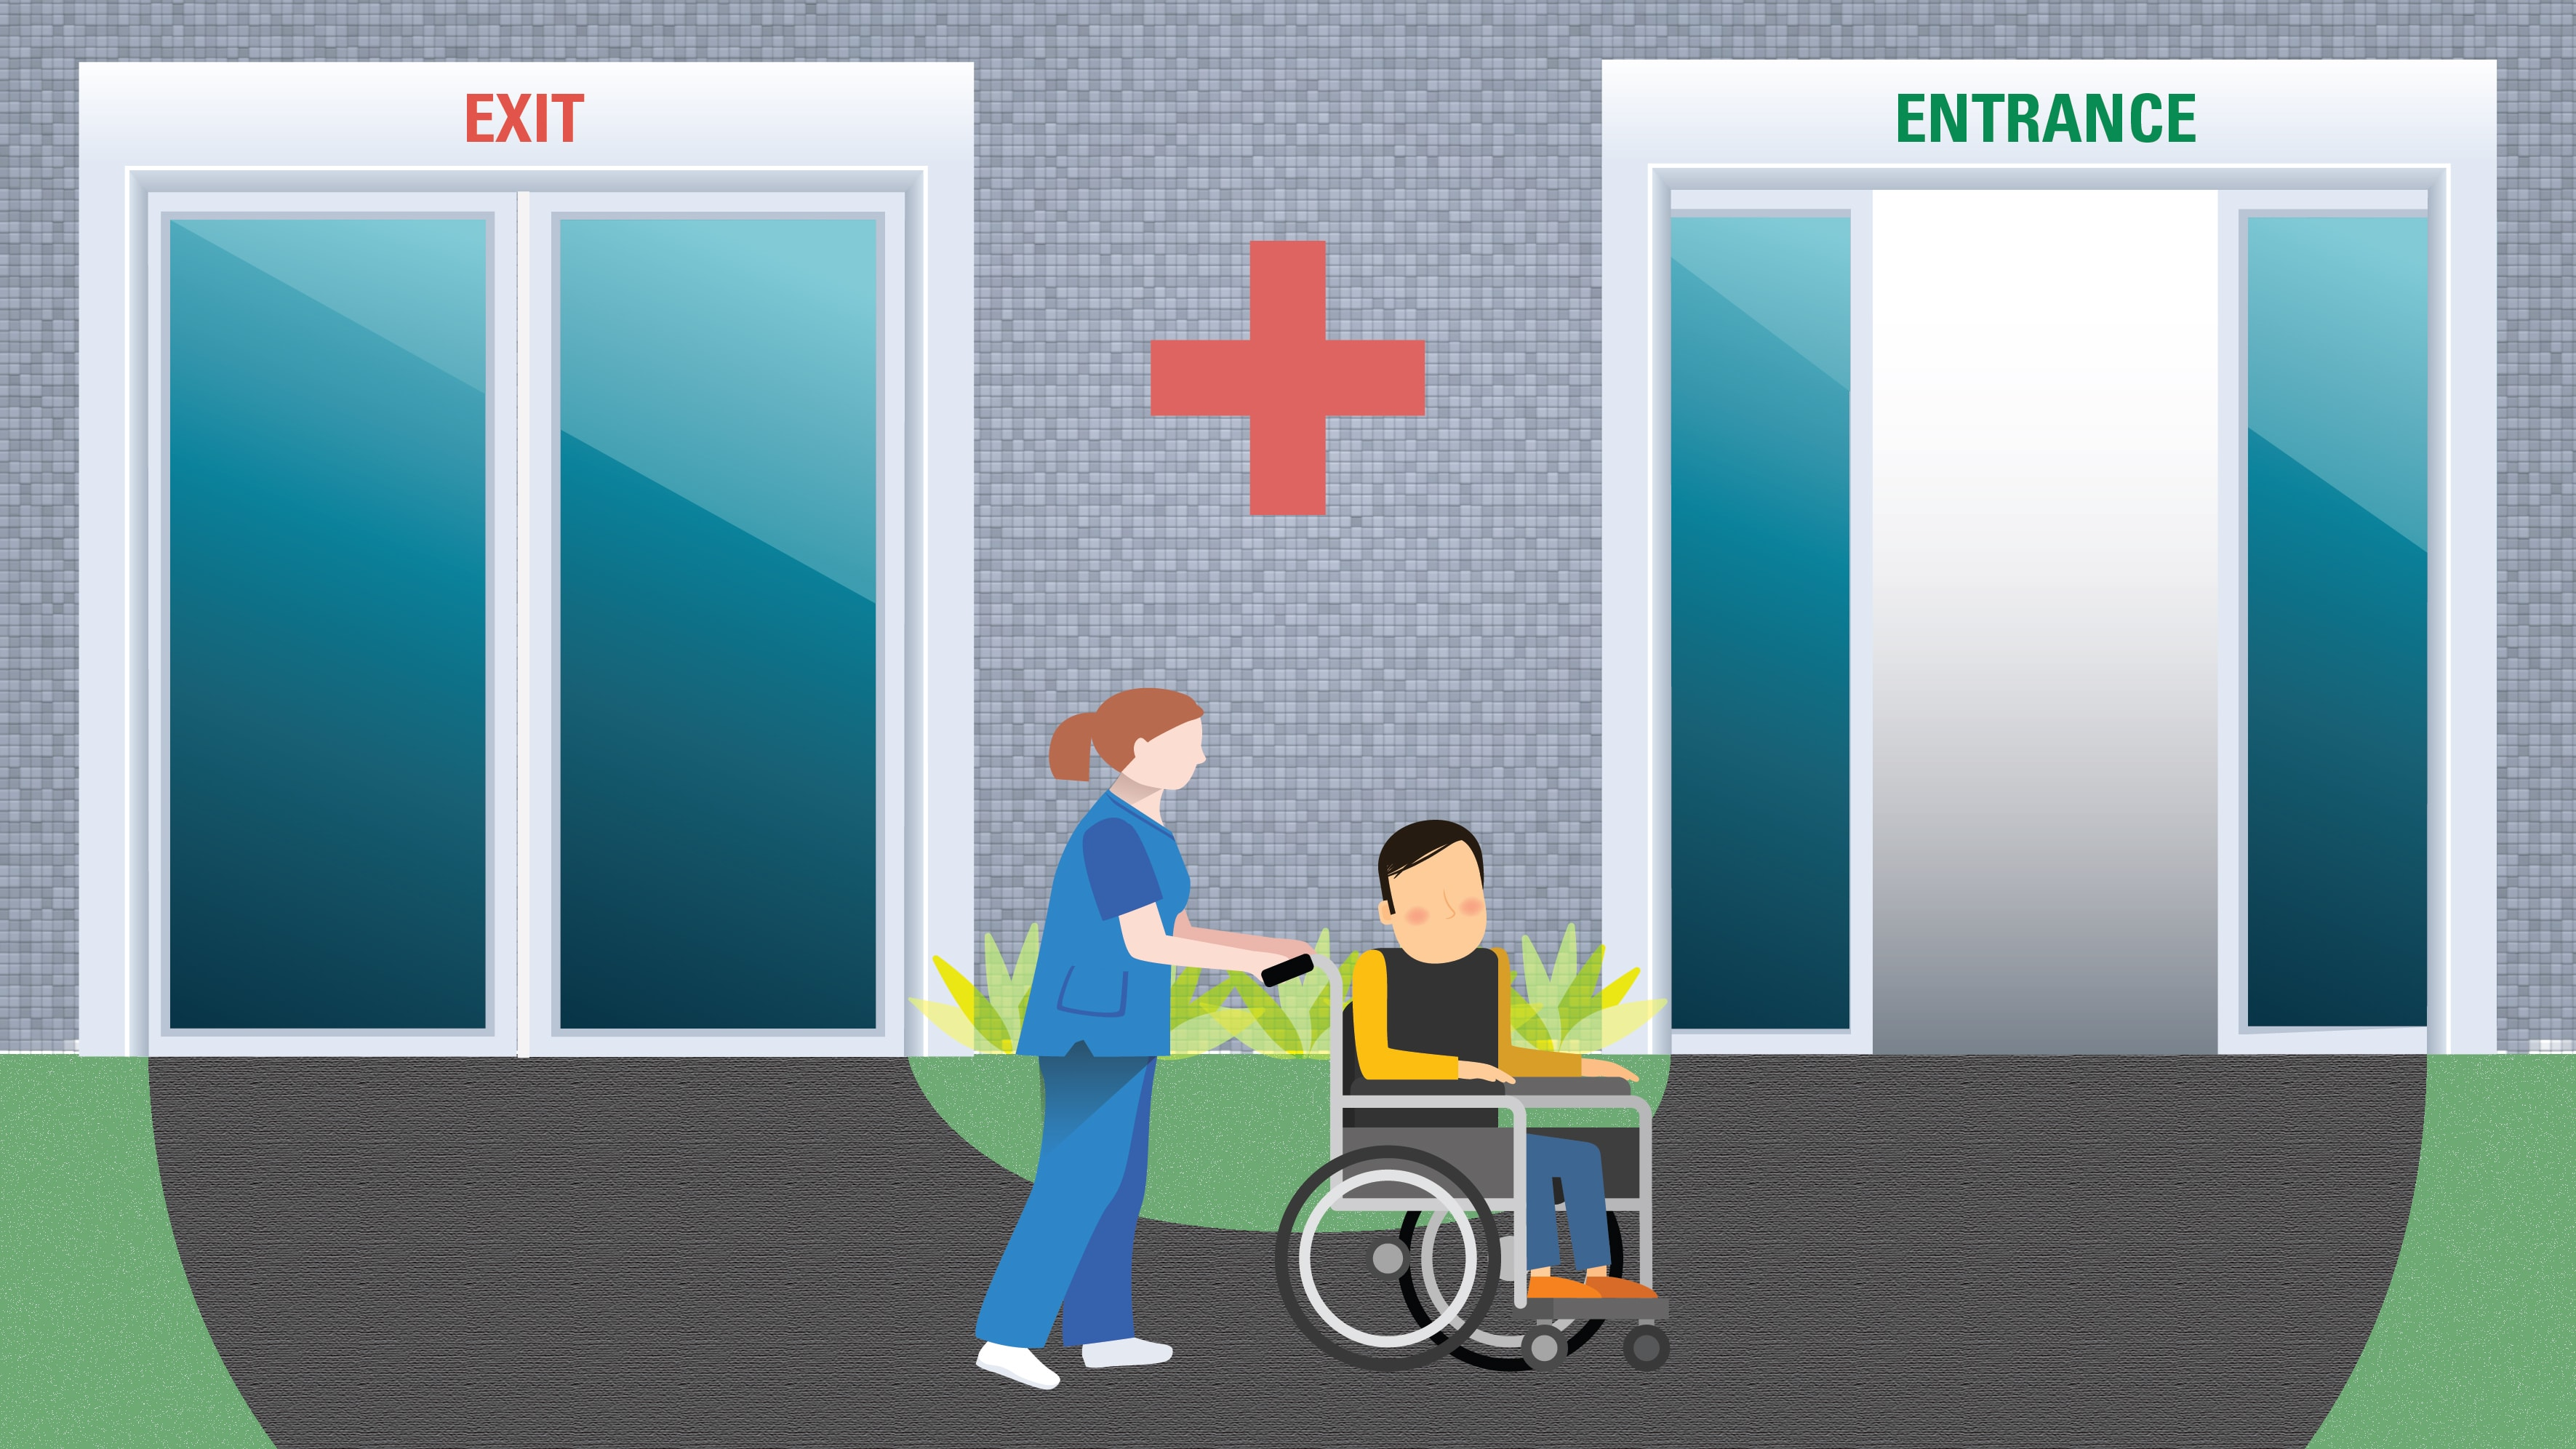 Illustration depicting a hospital patient being quickly readmitted to the same hospital.